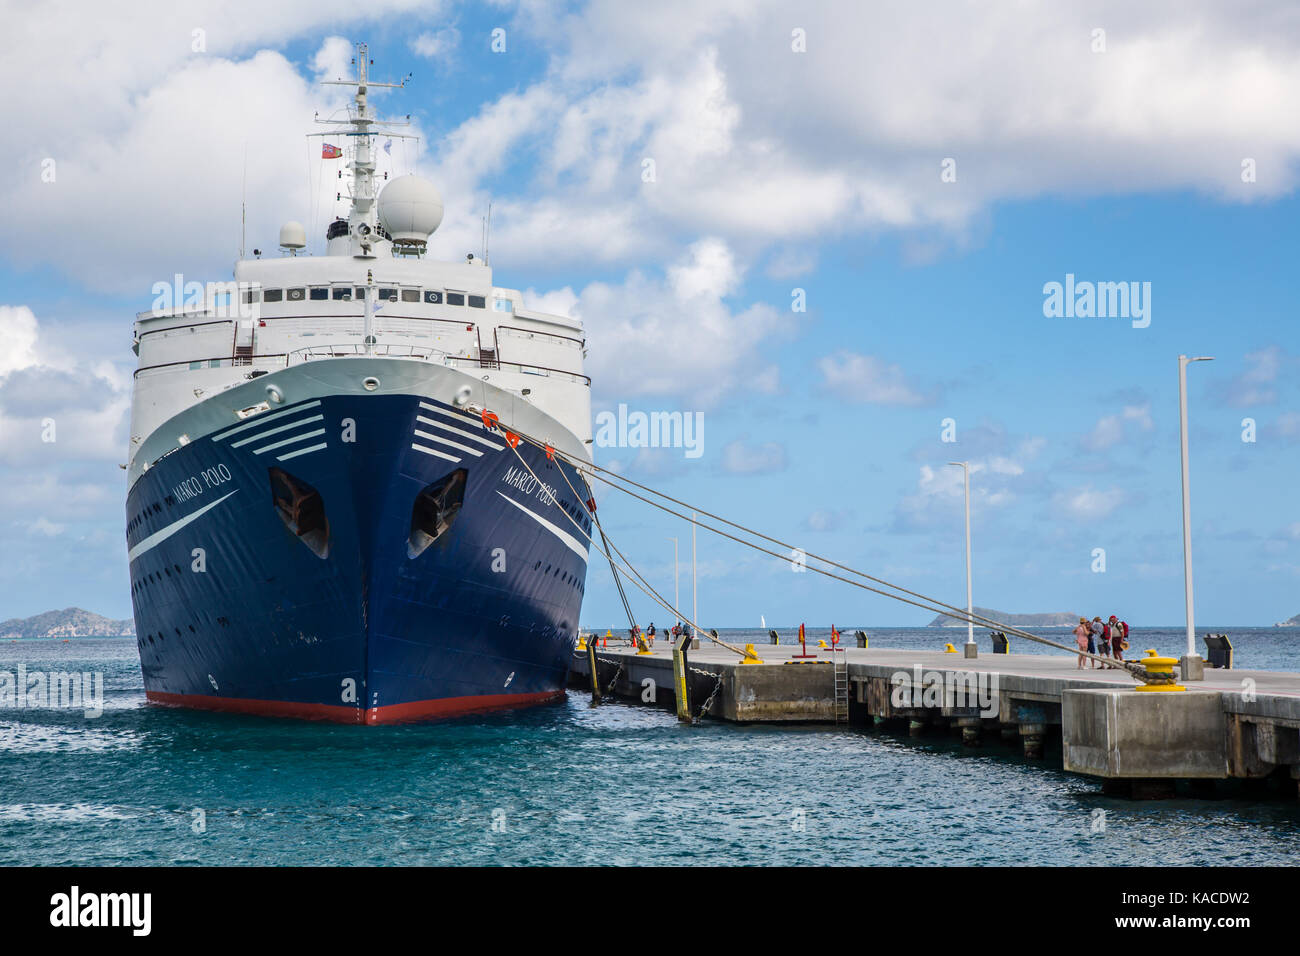 Marco Polo docked at Tortola, British Virgin Islands - Stock Image